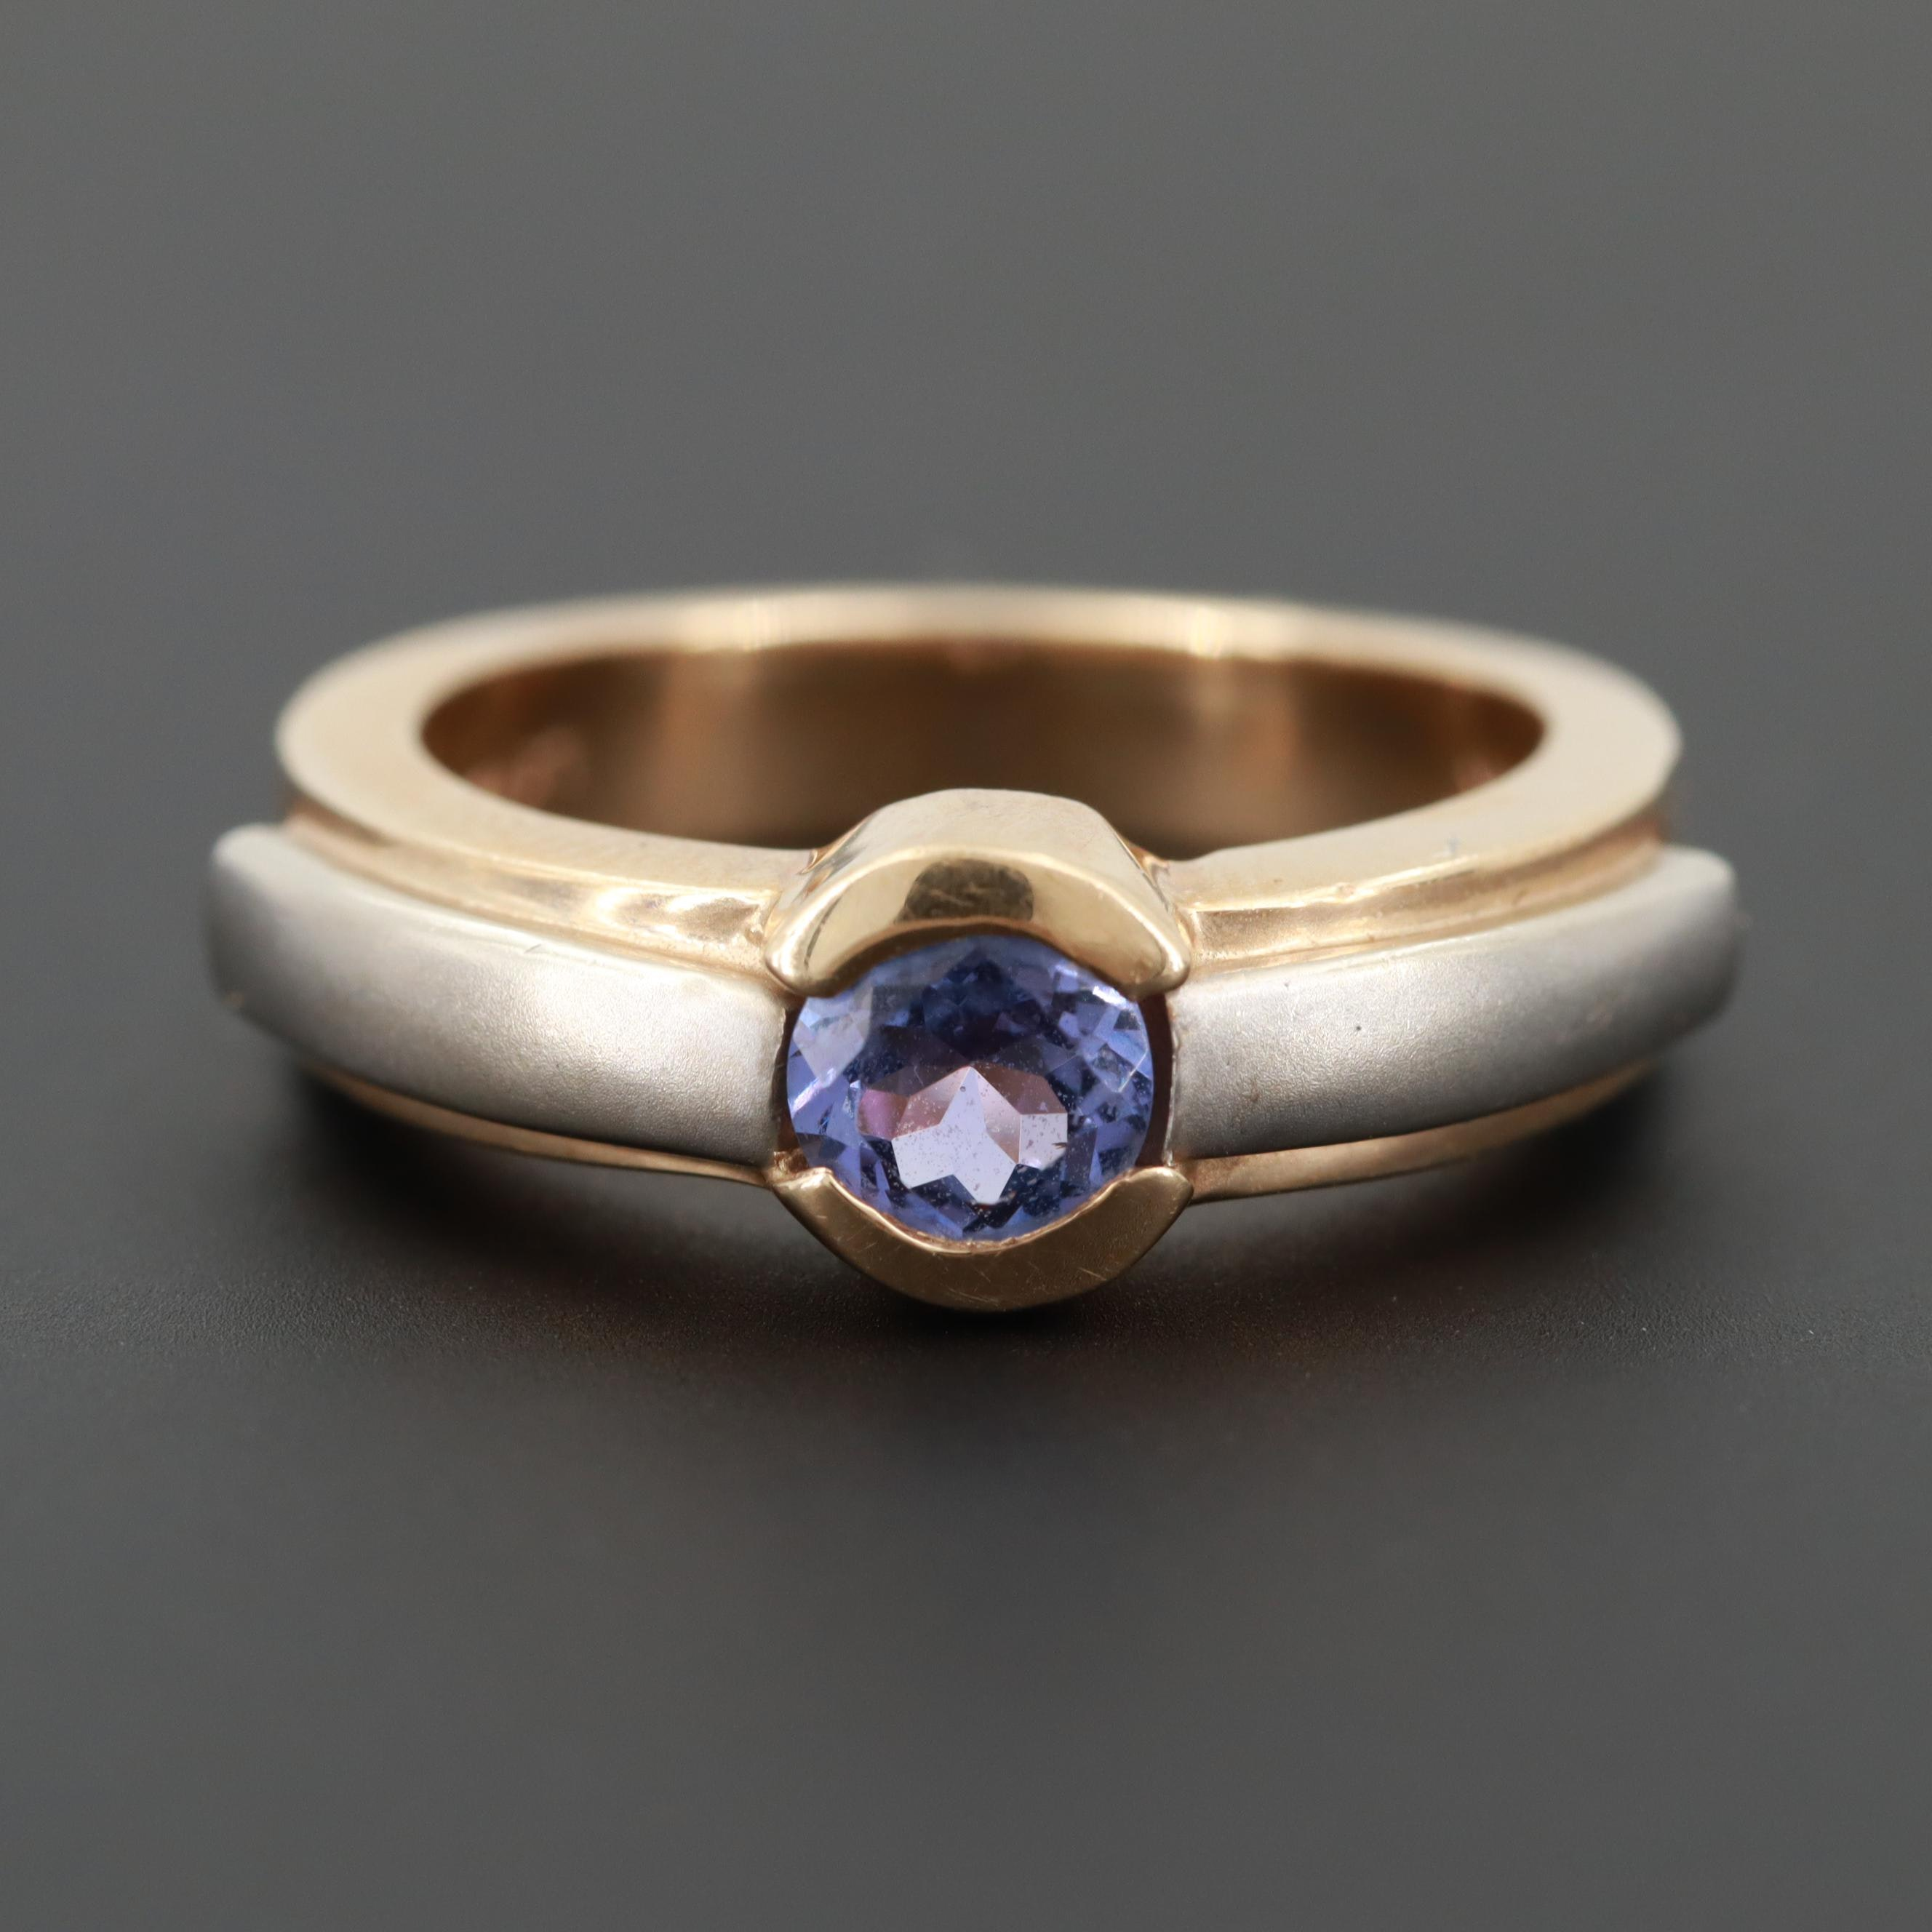 Le Vian 14K Yellow Gold Tanzanite Ring with White Gold Accent